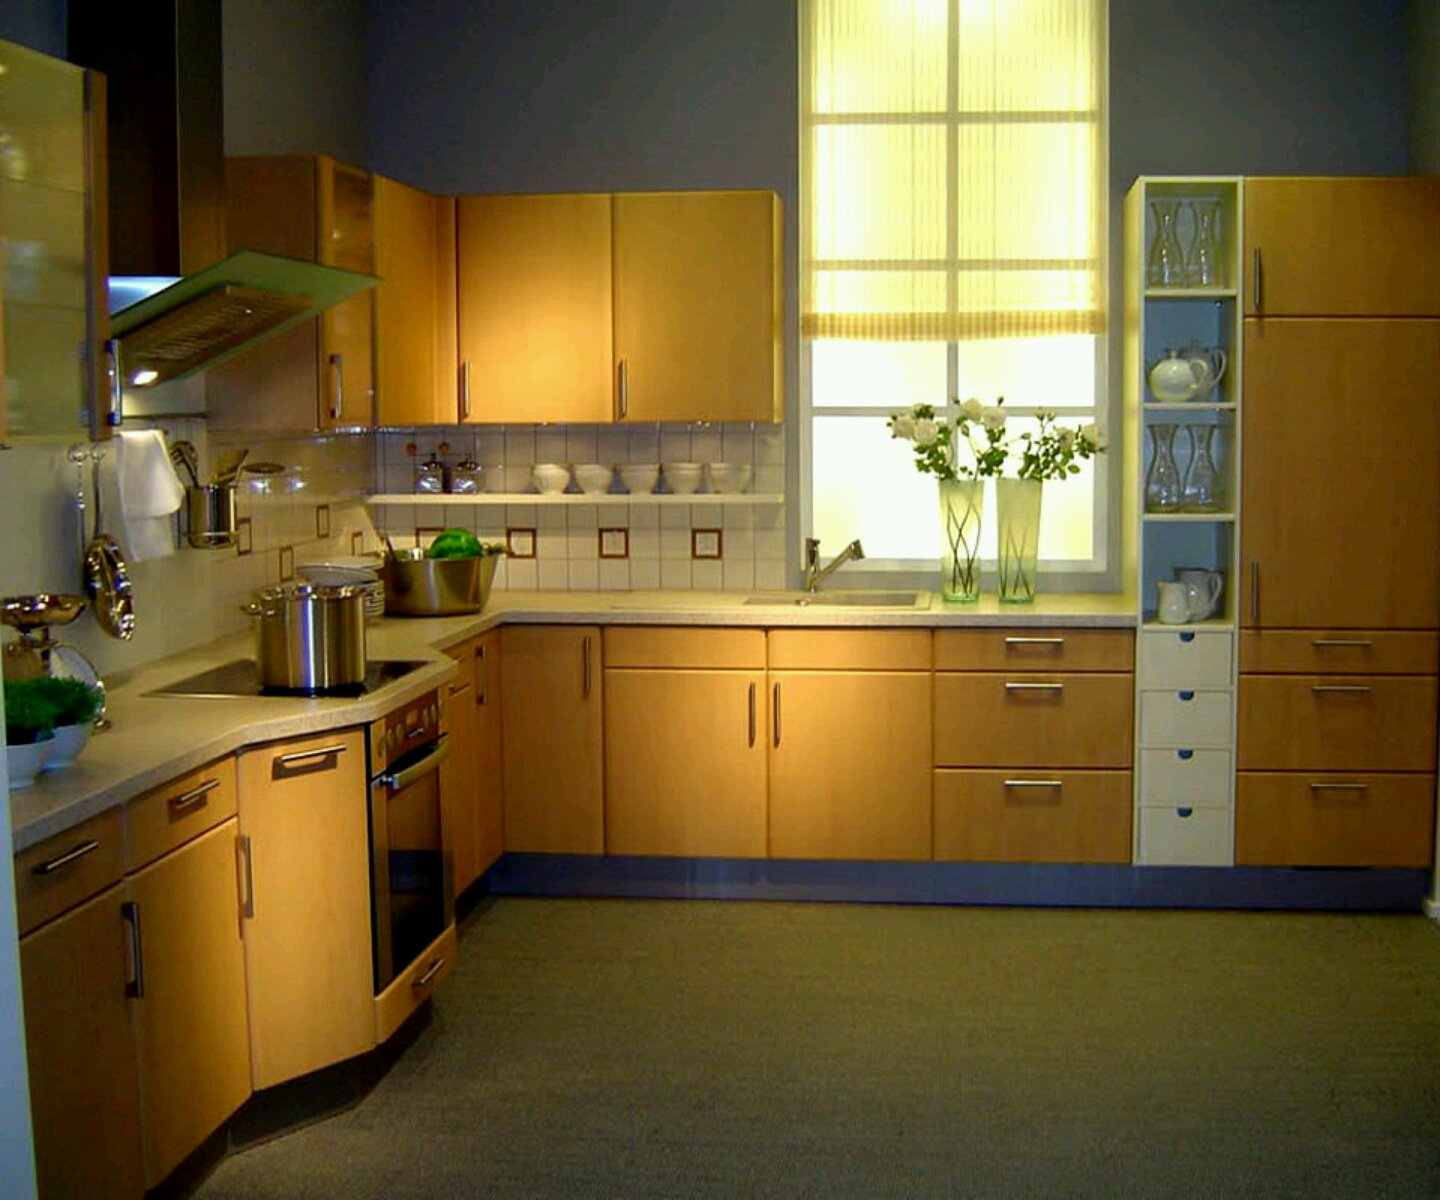 New Home Designs Latest Kitchen Cabinets Designs Modern: New Home Designs Latest.: Modern Kitchen Cabinets Designs